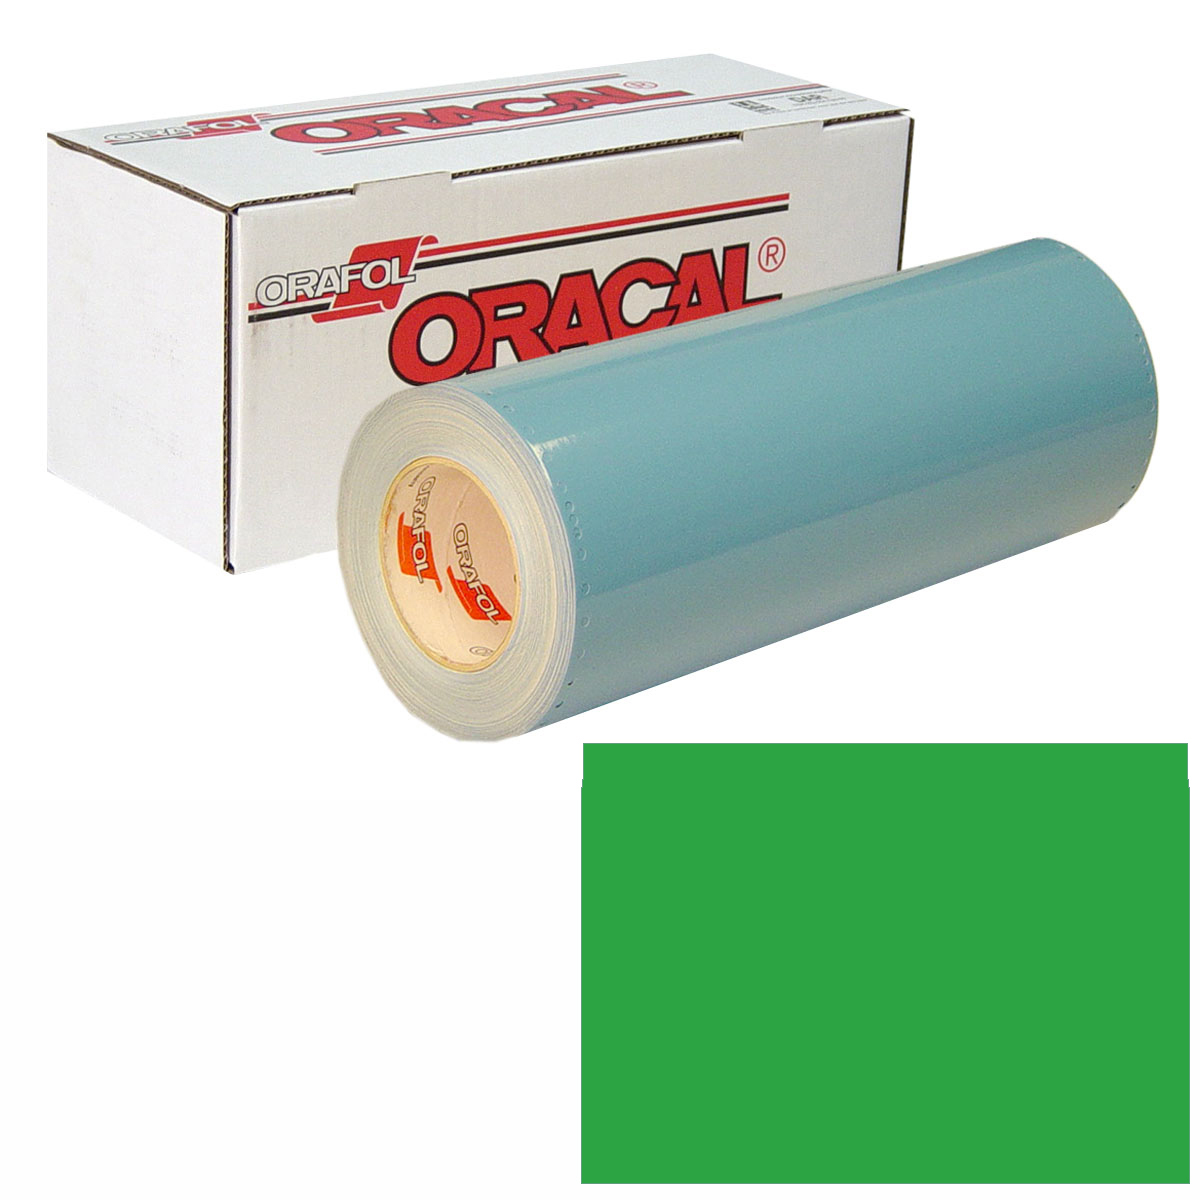 ORACAL 751 15In X 50Yd 064 Yellow Green